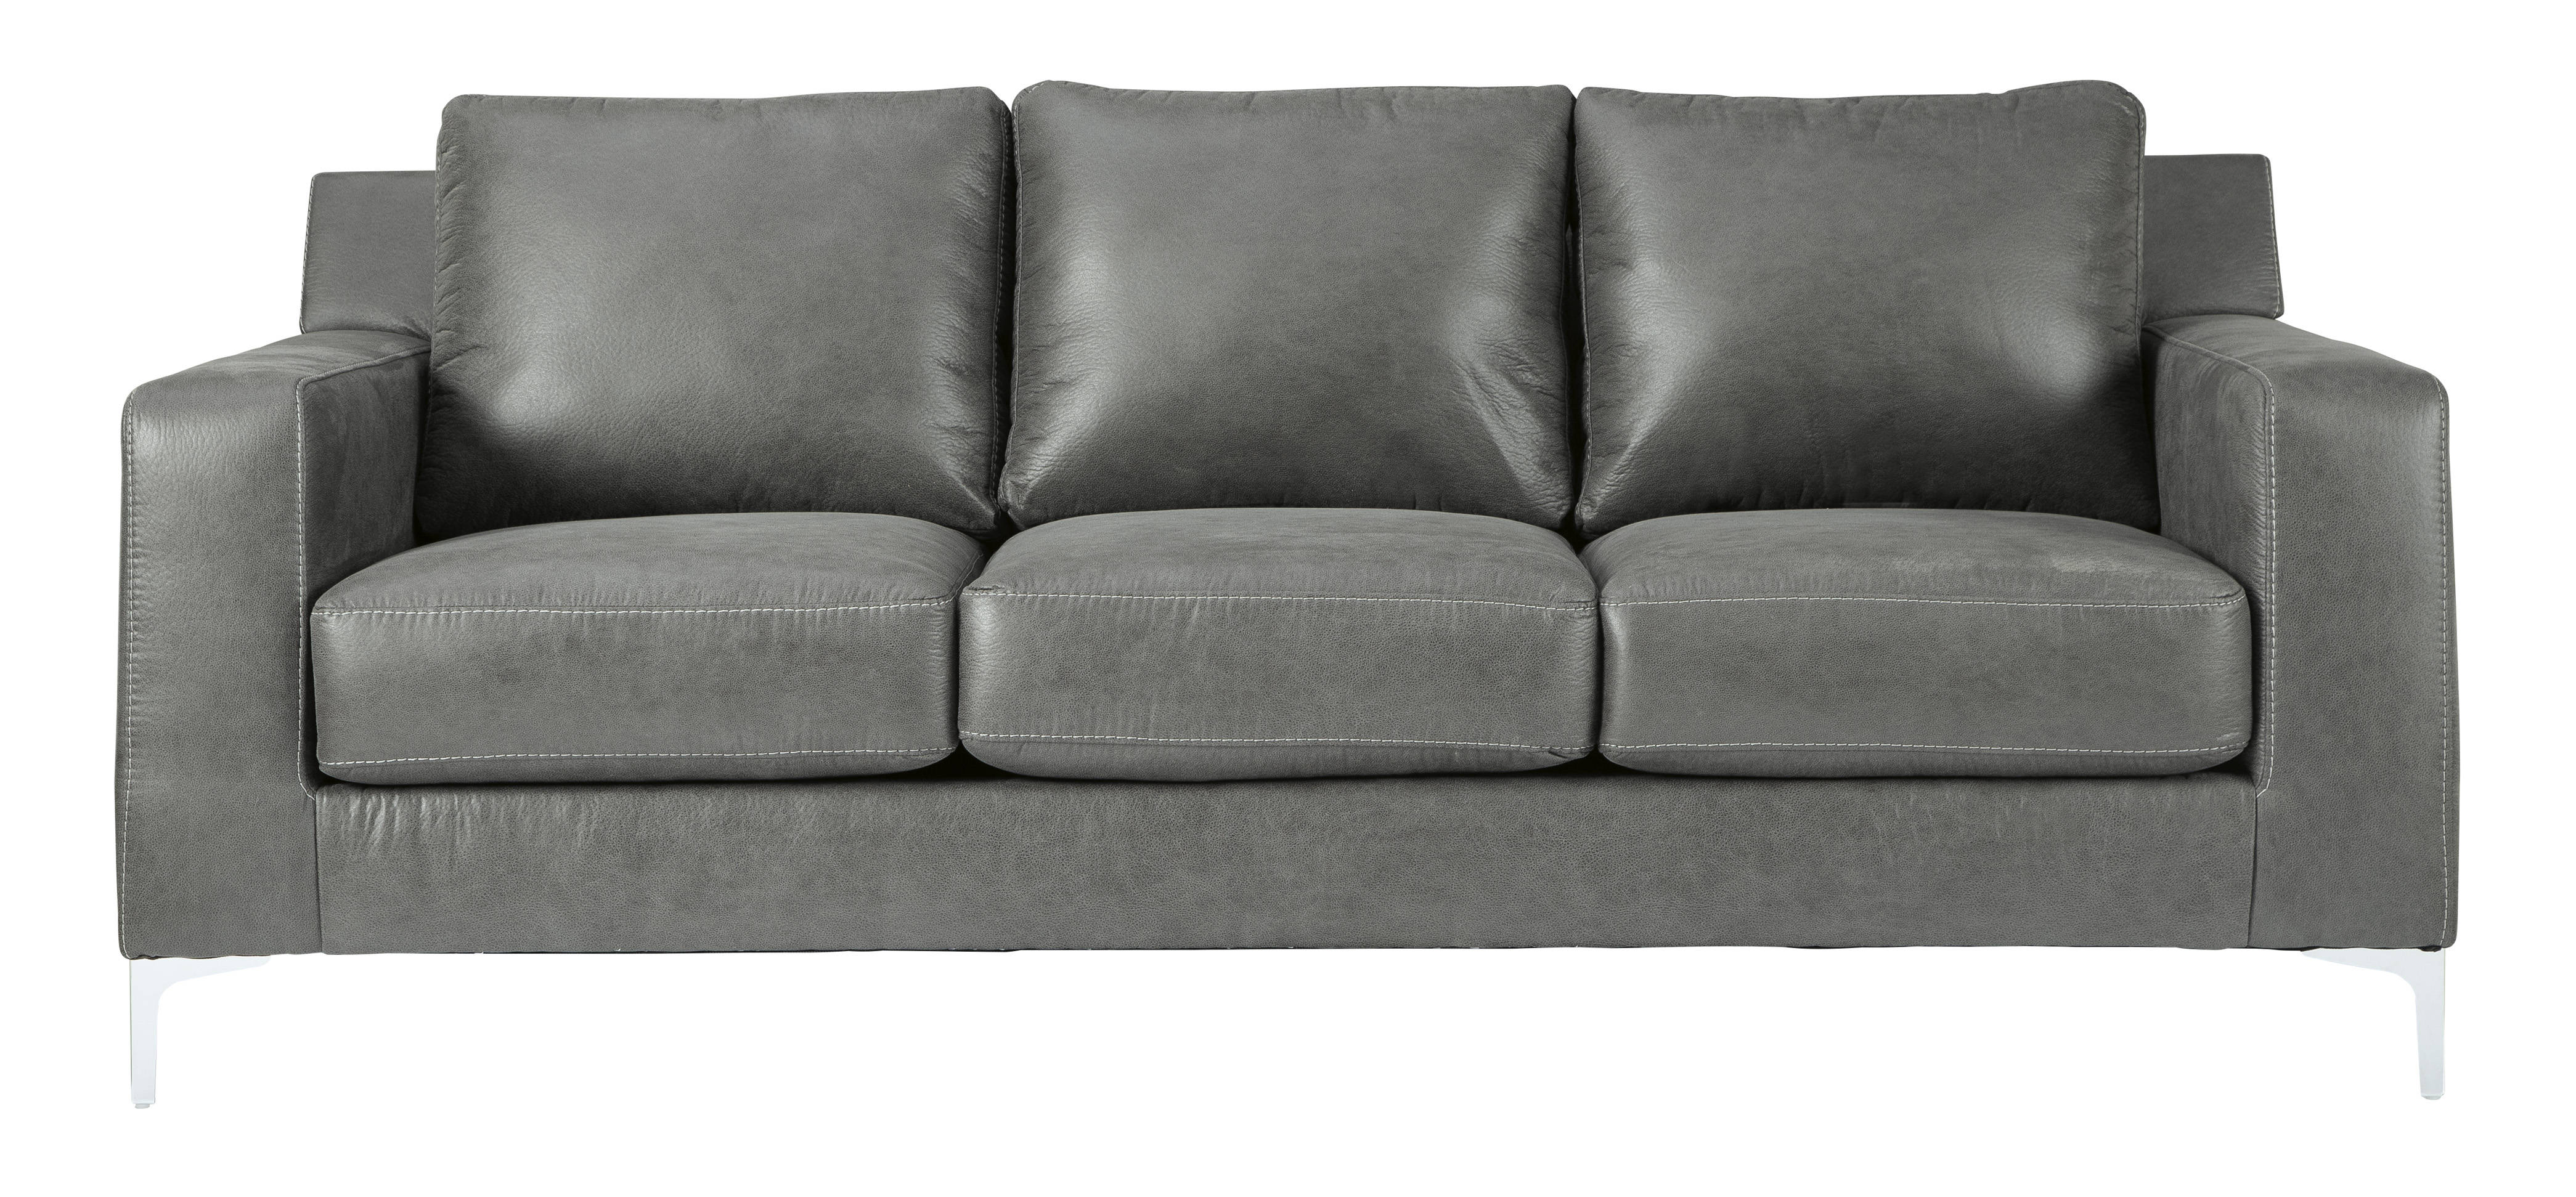 Miraculous Ashley Furniture Ryler Charcoal Sofa Home Interior And Landscaping Ponolsignezvosmurscom